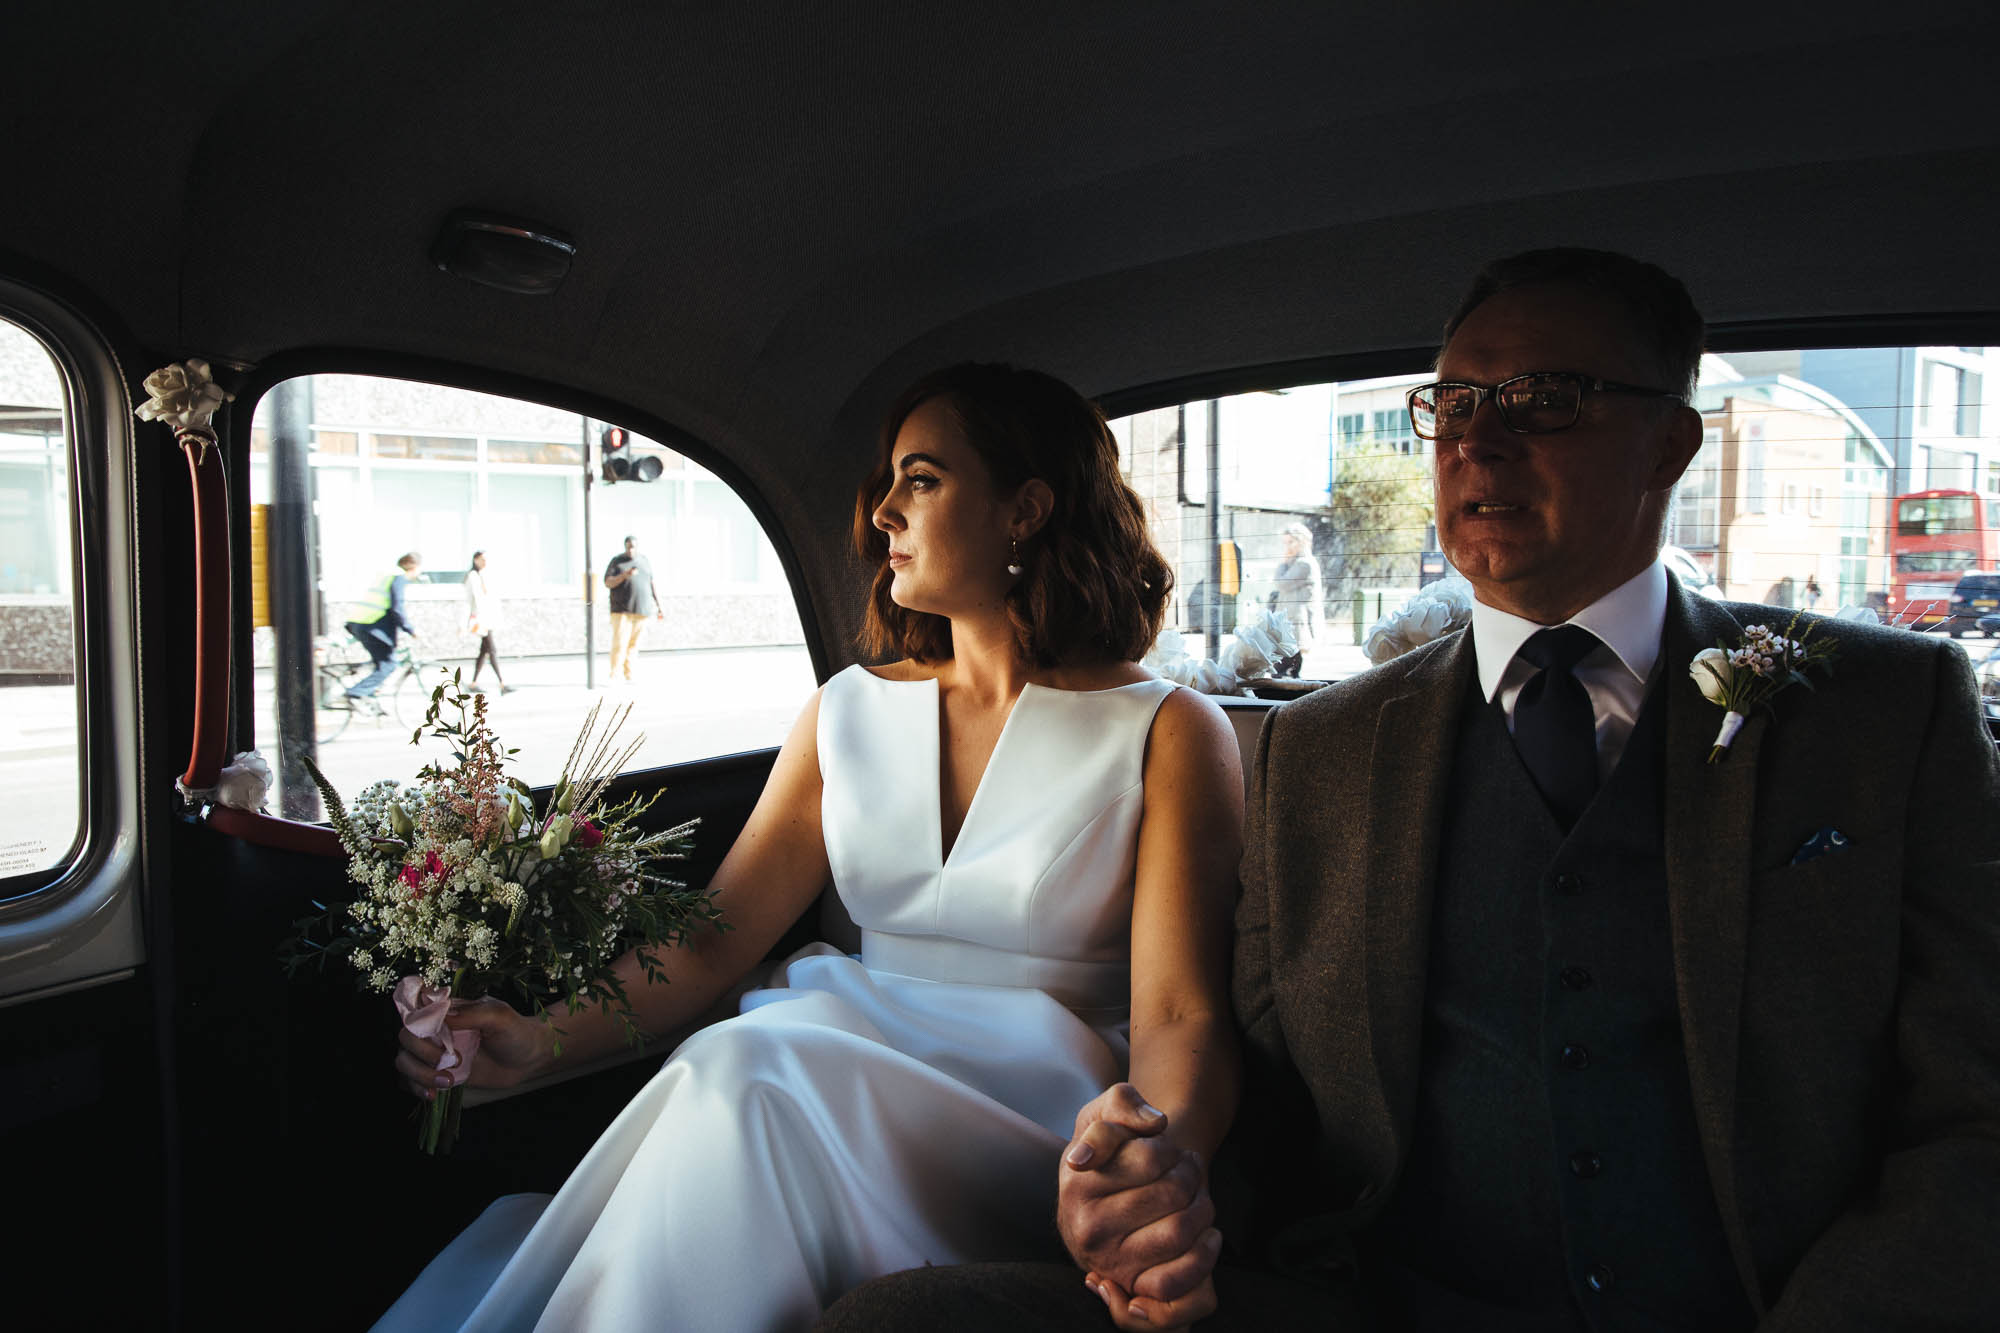 Bride and father in London wedding taxi